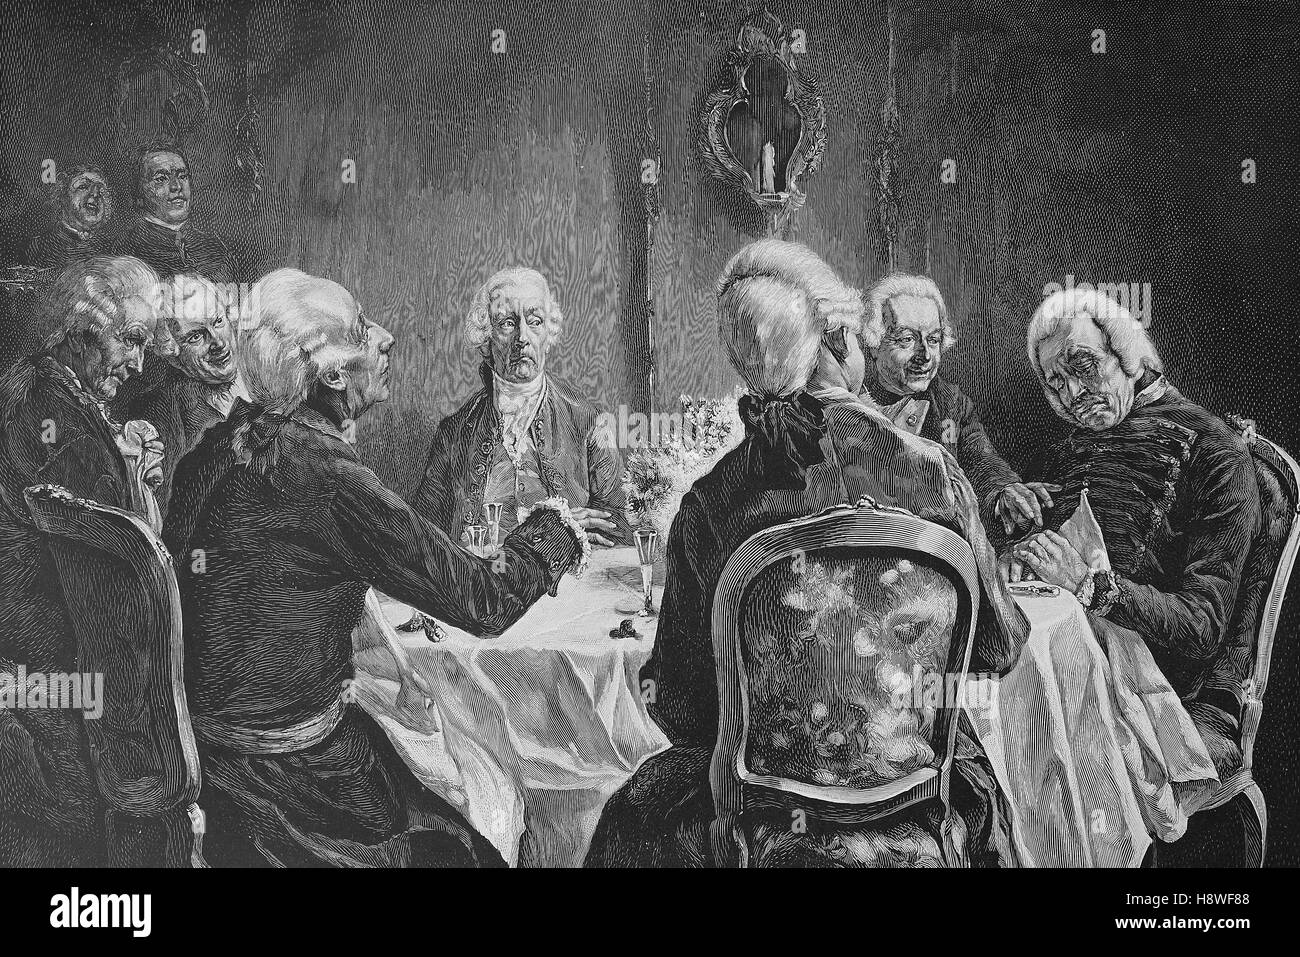 Frederick II, Friedrich was King of Prussia from 1740 until 1786, here on a table together with the sleeping Hans - Stock Image